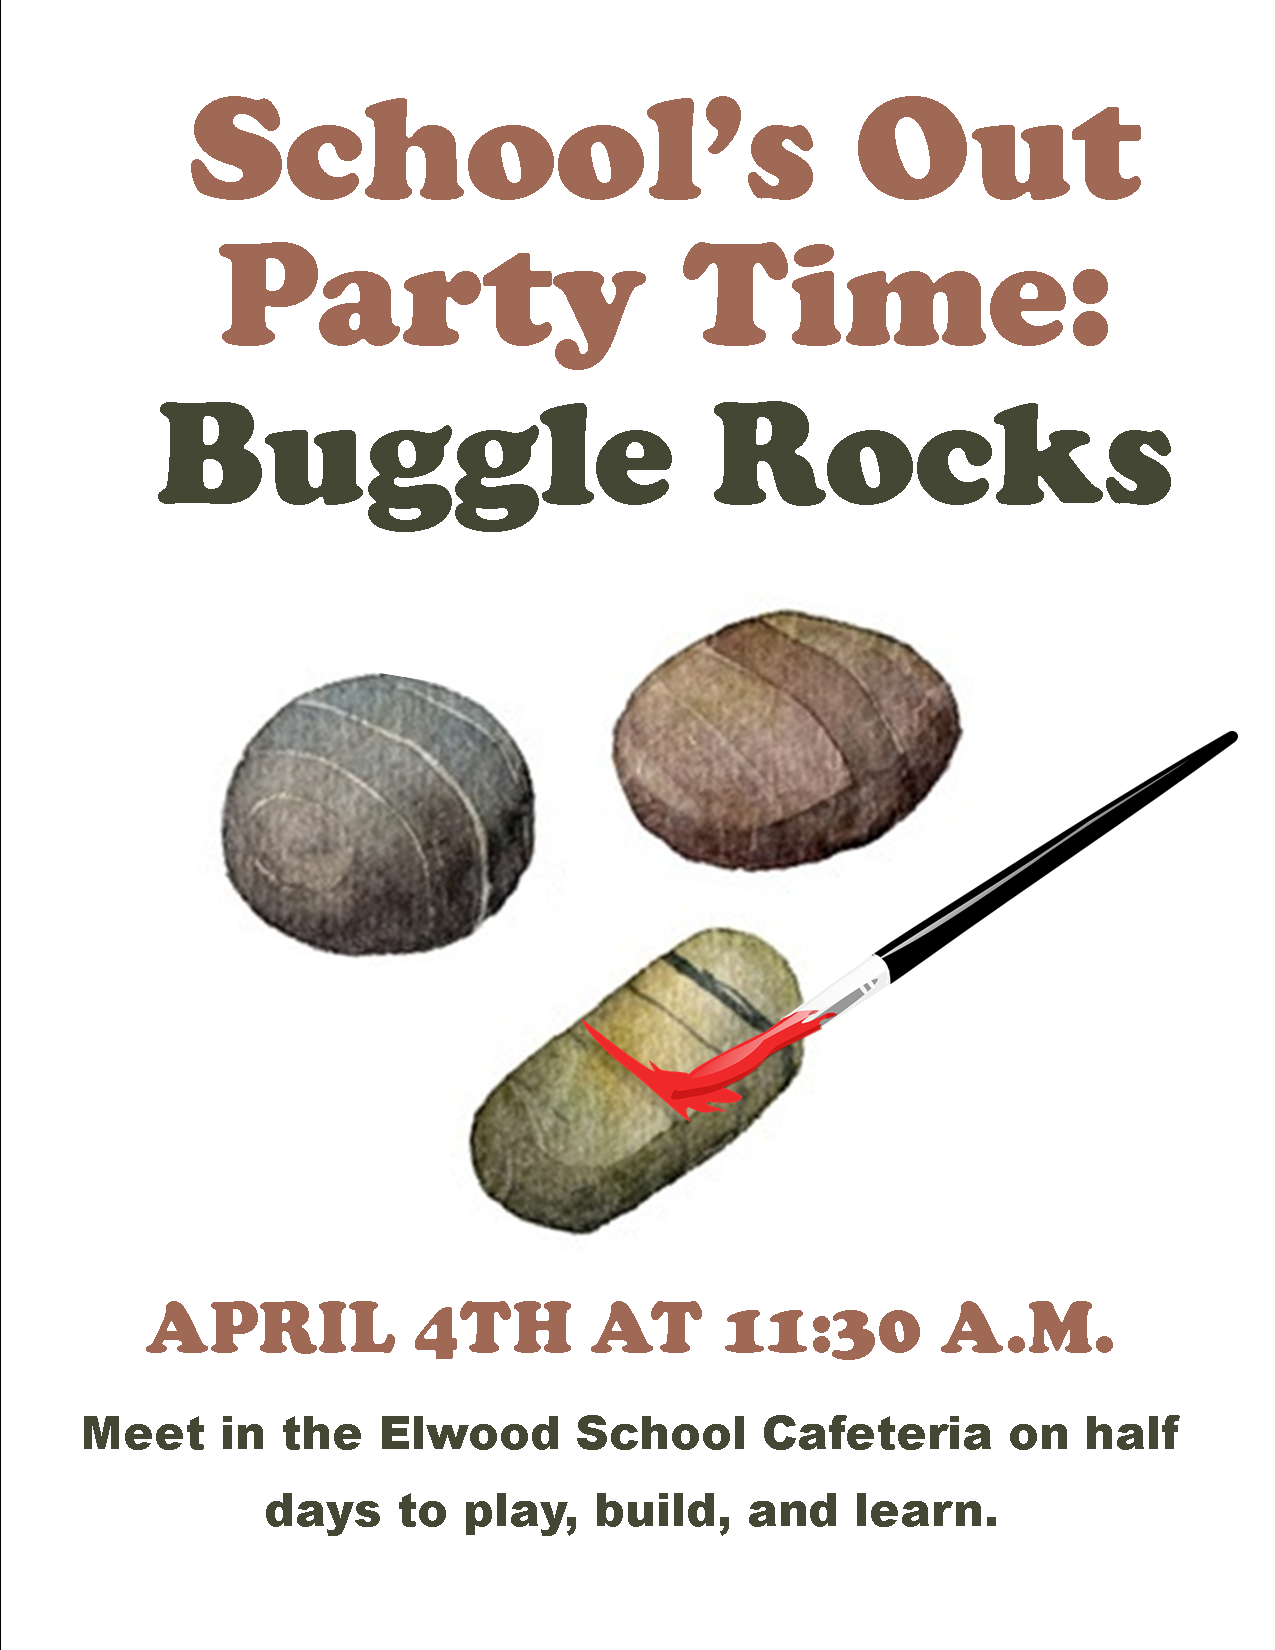 School's Out Party Time: Buggle Rocks